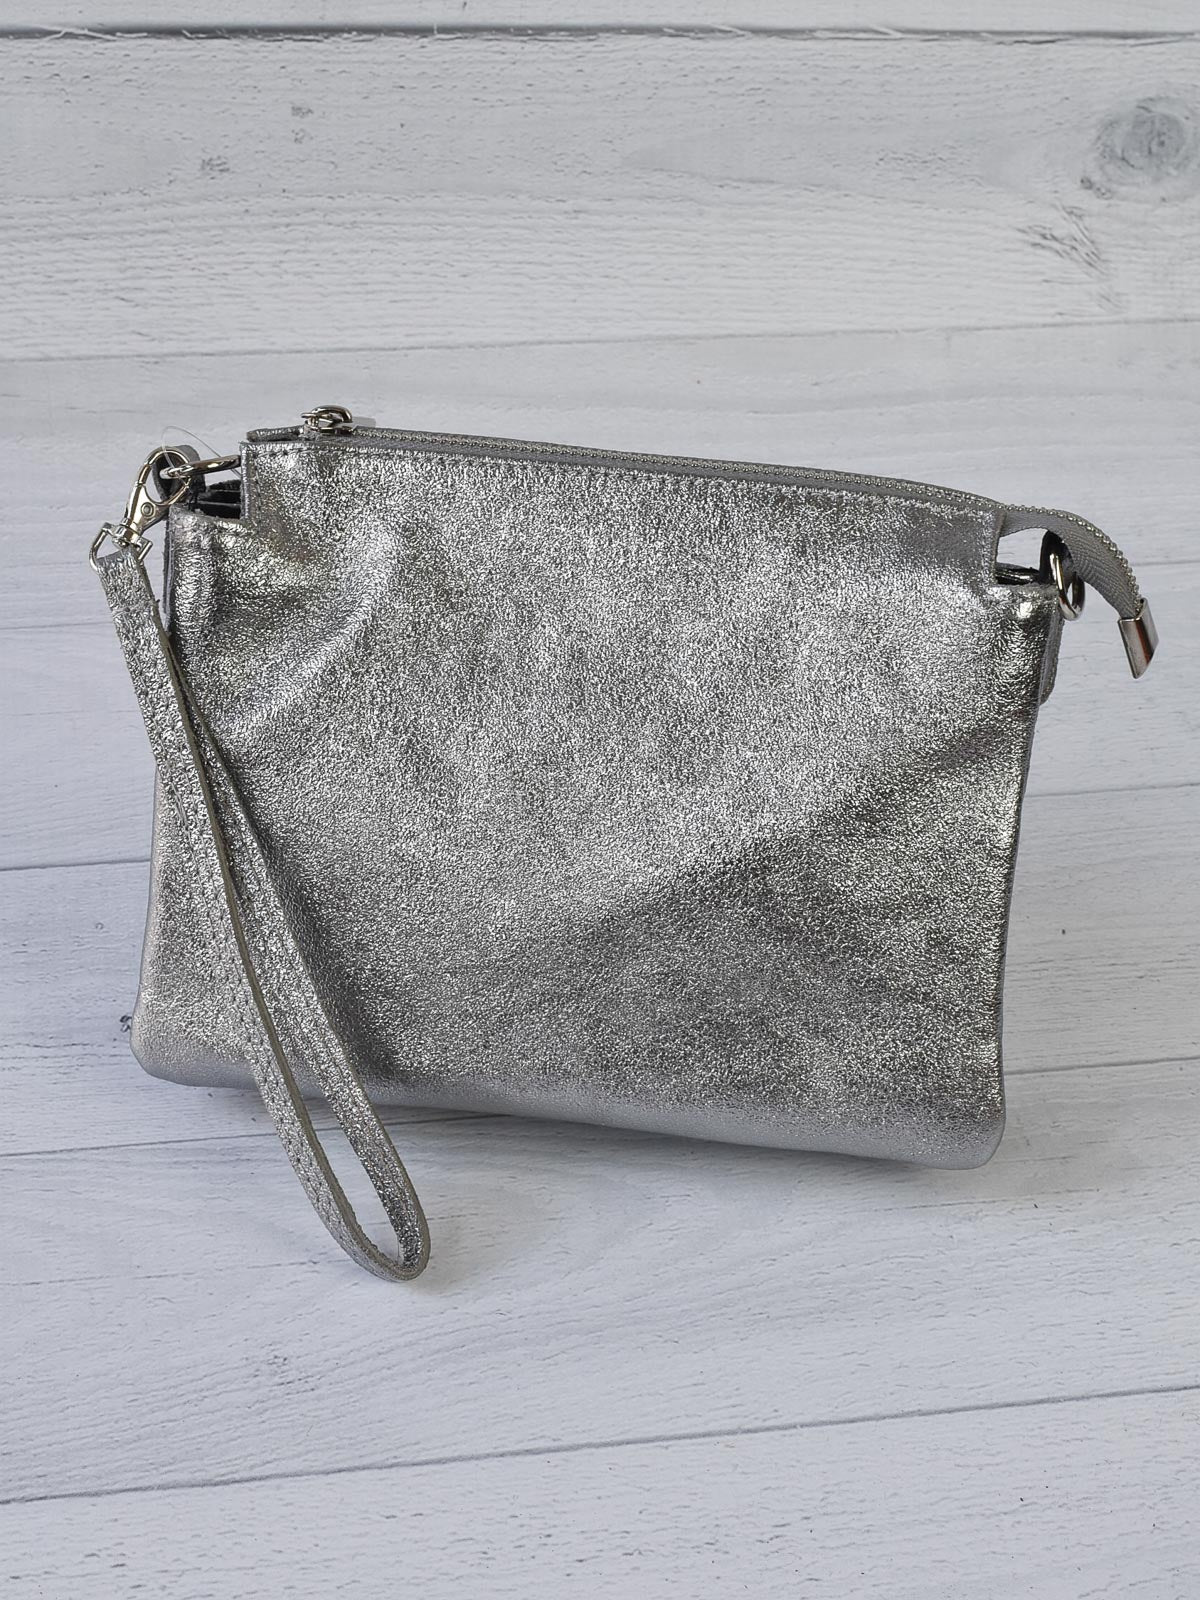 Jijou Capri Elvira Metallic Leather Crossbody Bag, Silver - Statement Boutique